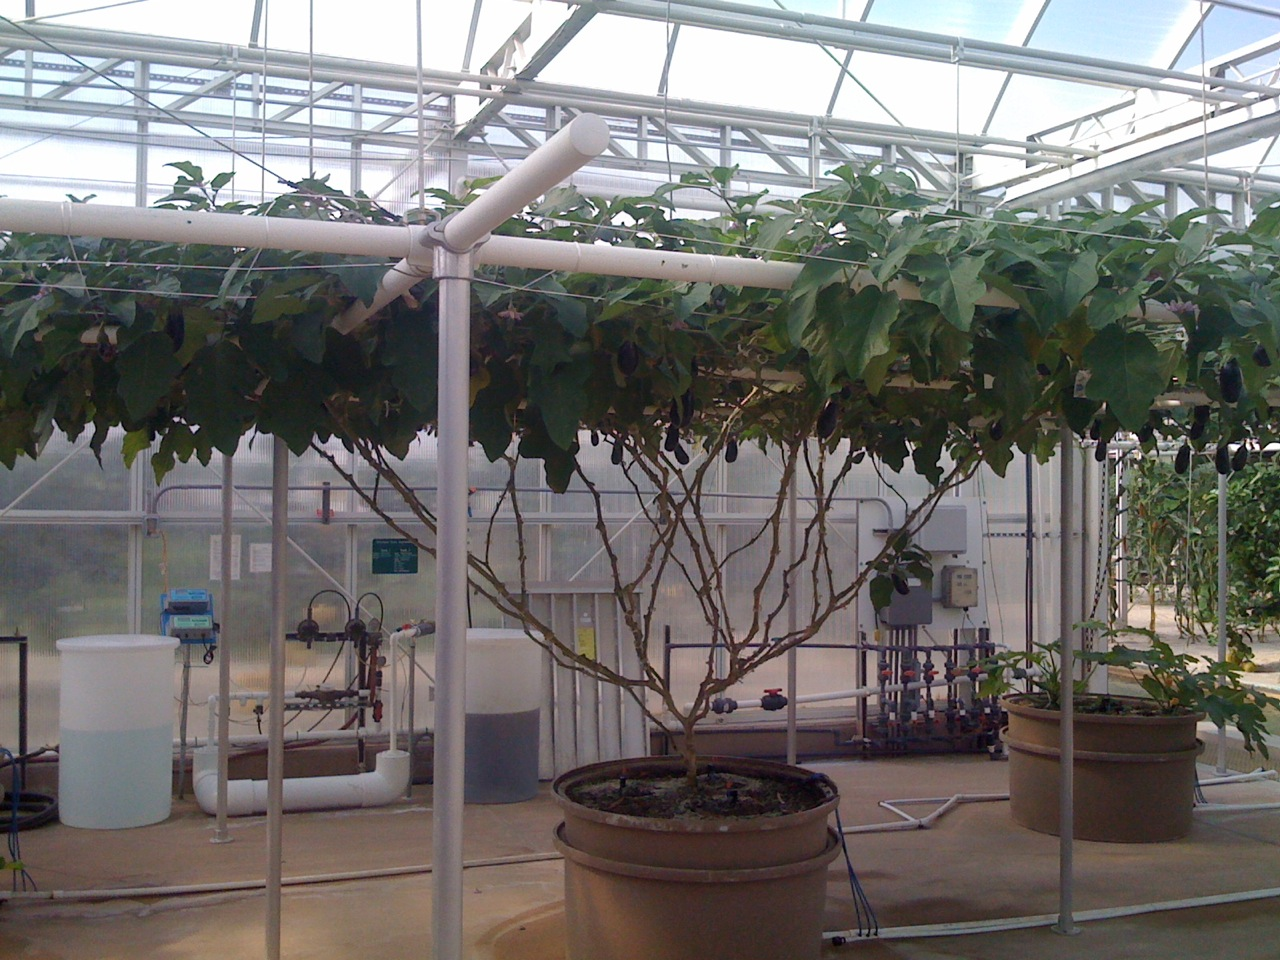 World-Record-Largest-Giant-eggplant-tree-ever-Seeds-of-Life-Tour-Epcot-Disney